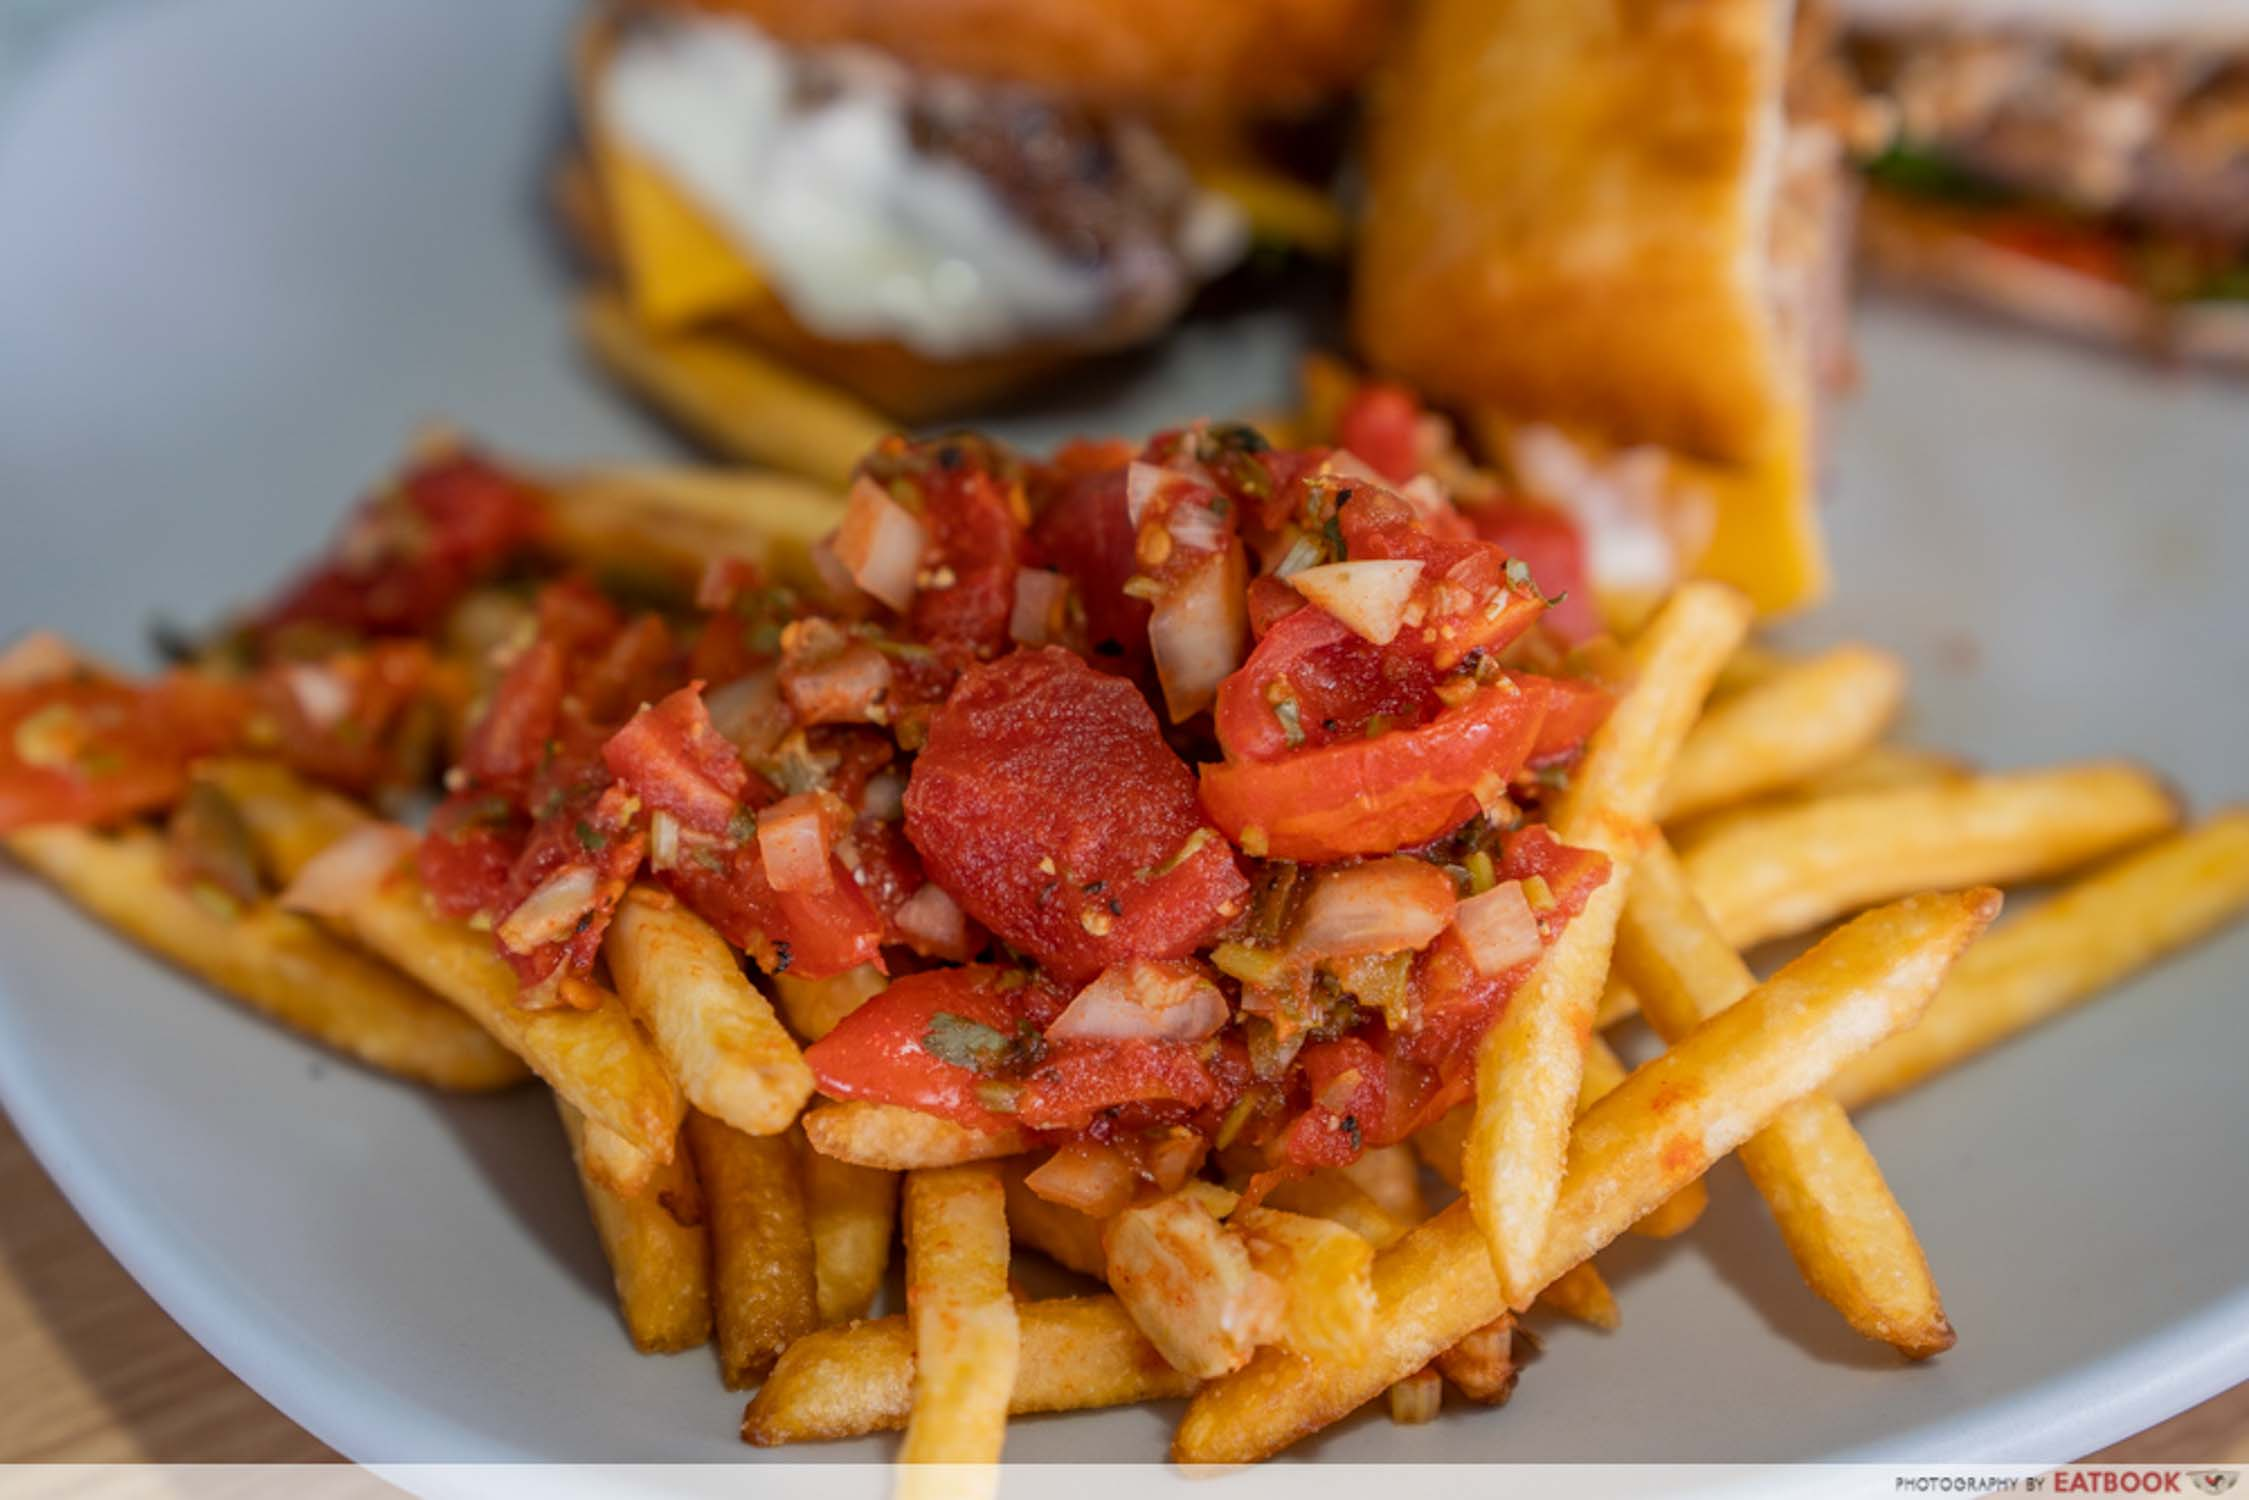 The Outslider Salsa Fries